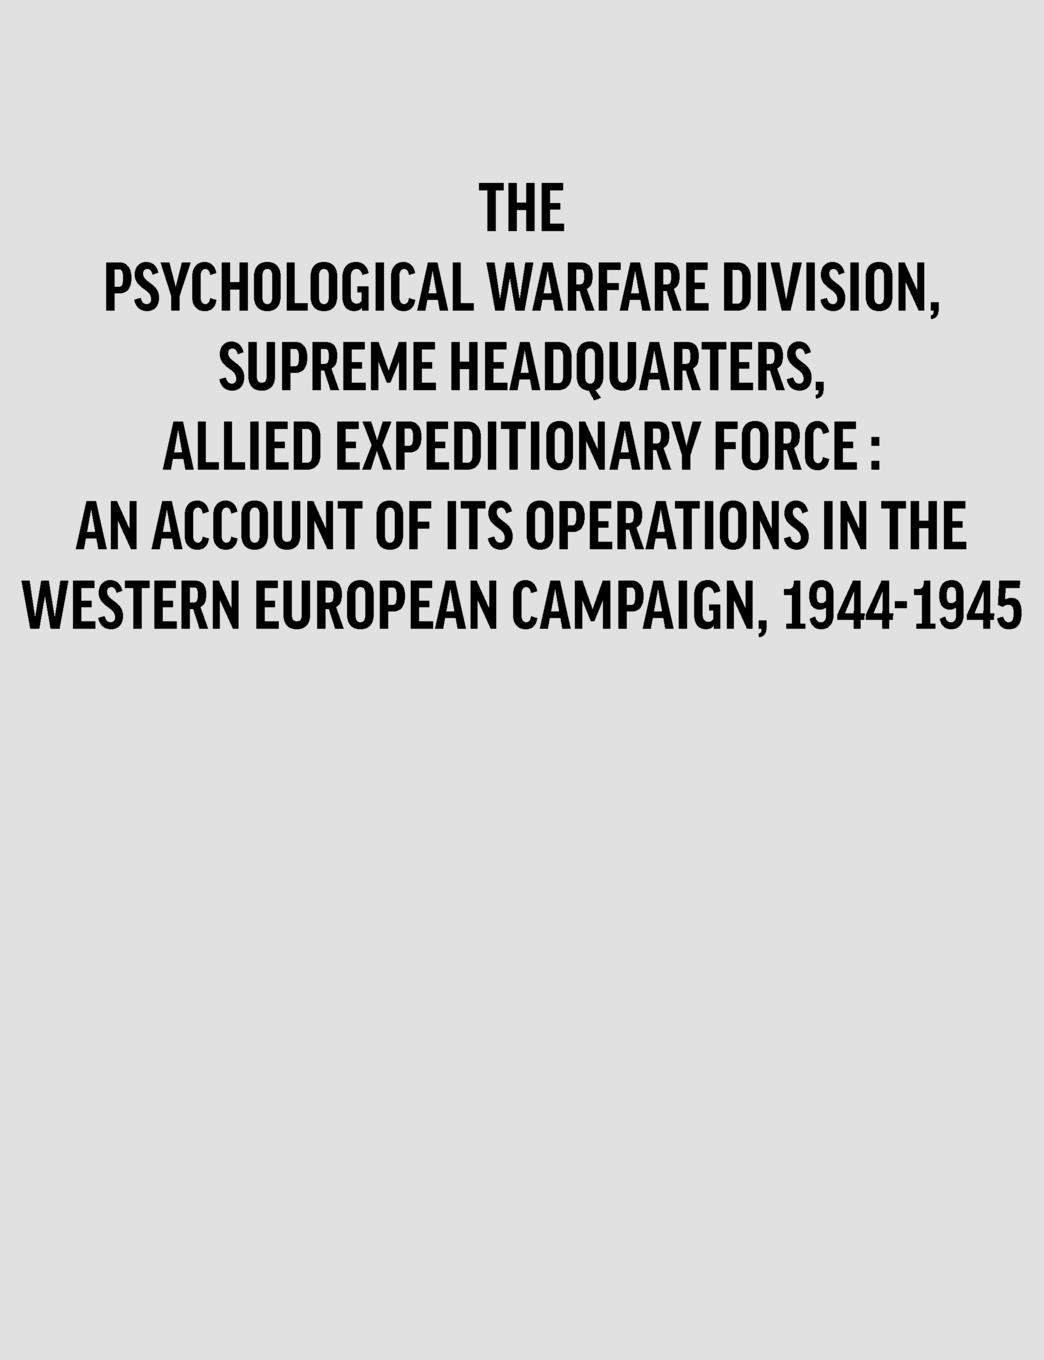 Division Historian Psychological.Warfare.Division,.Supreme.Headquarters,.Allied.Expeditionary.Force. .an.account.of its.operations.in the.Western.European.campaign,.1944-1945. pomidoro pwd 505002